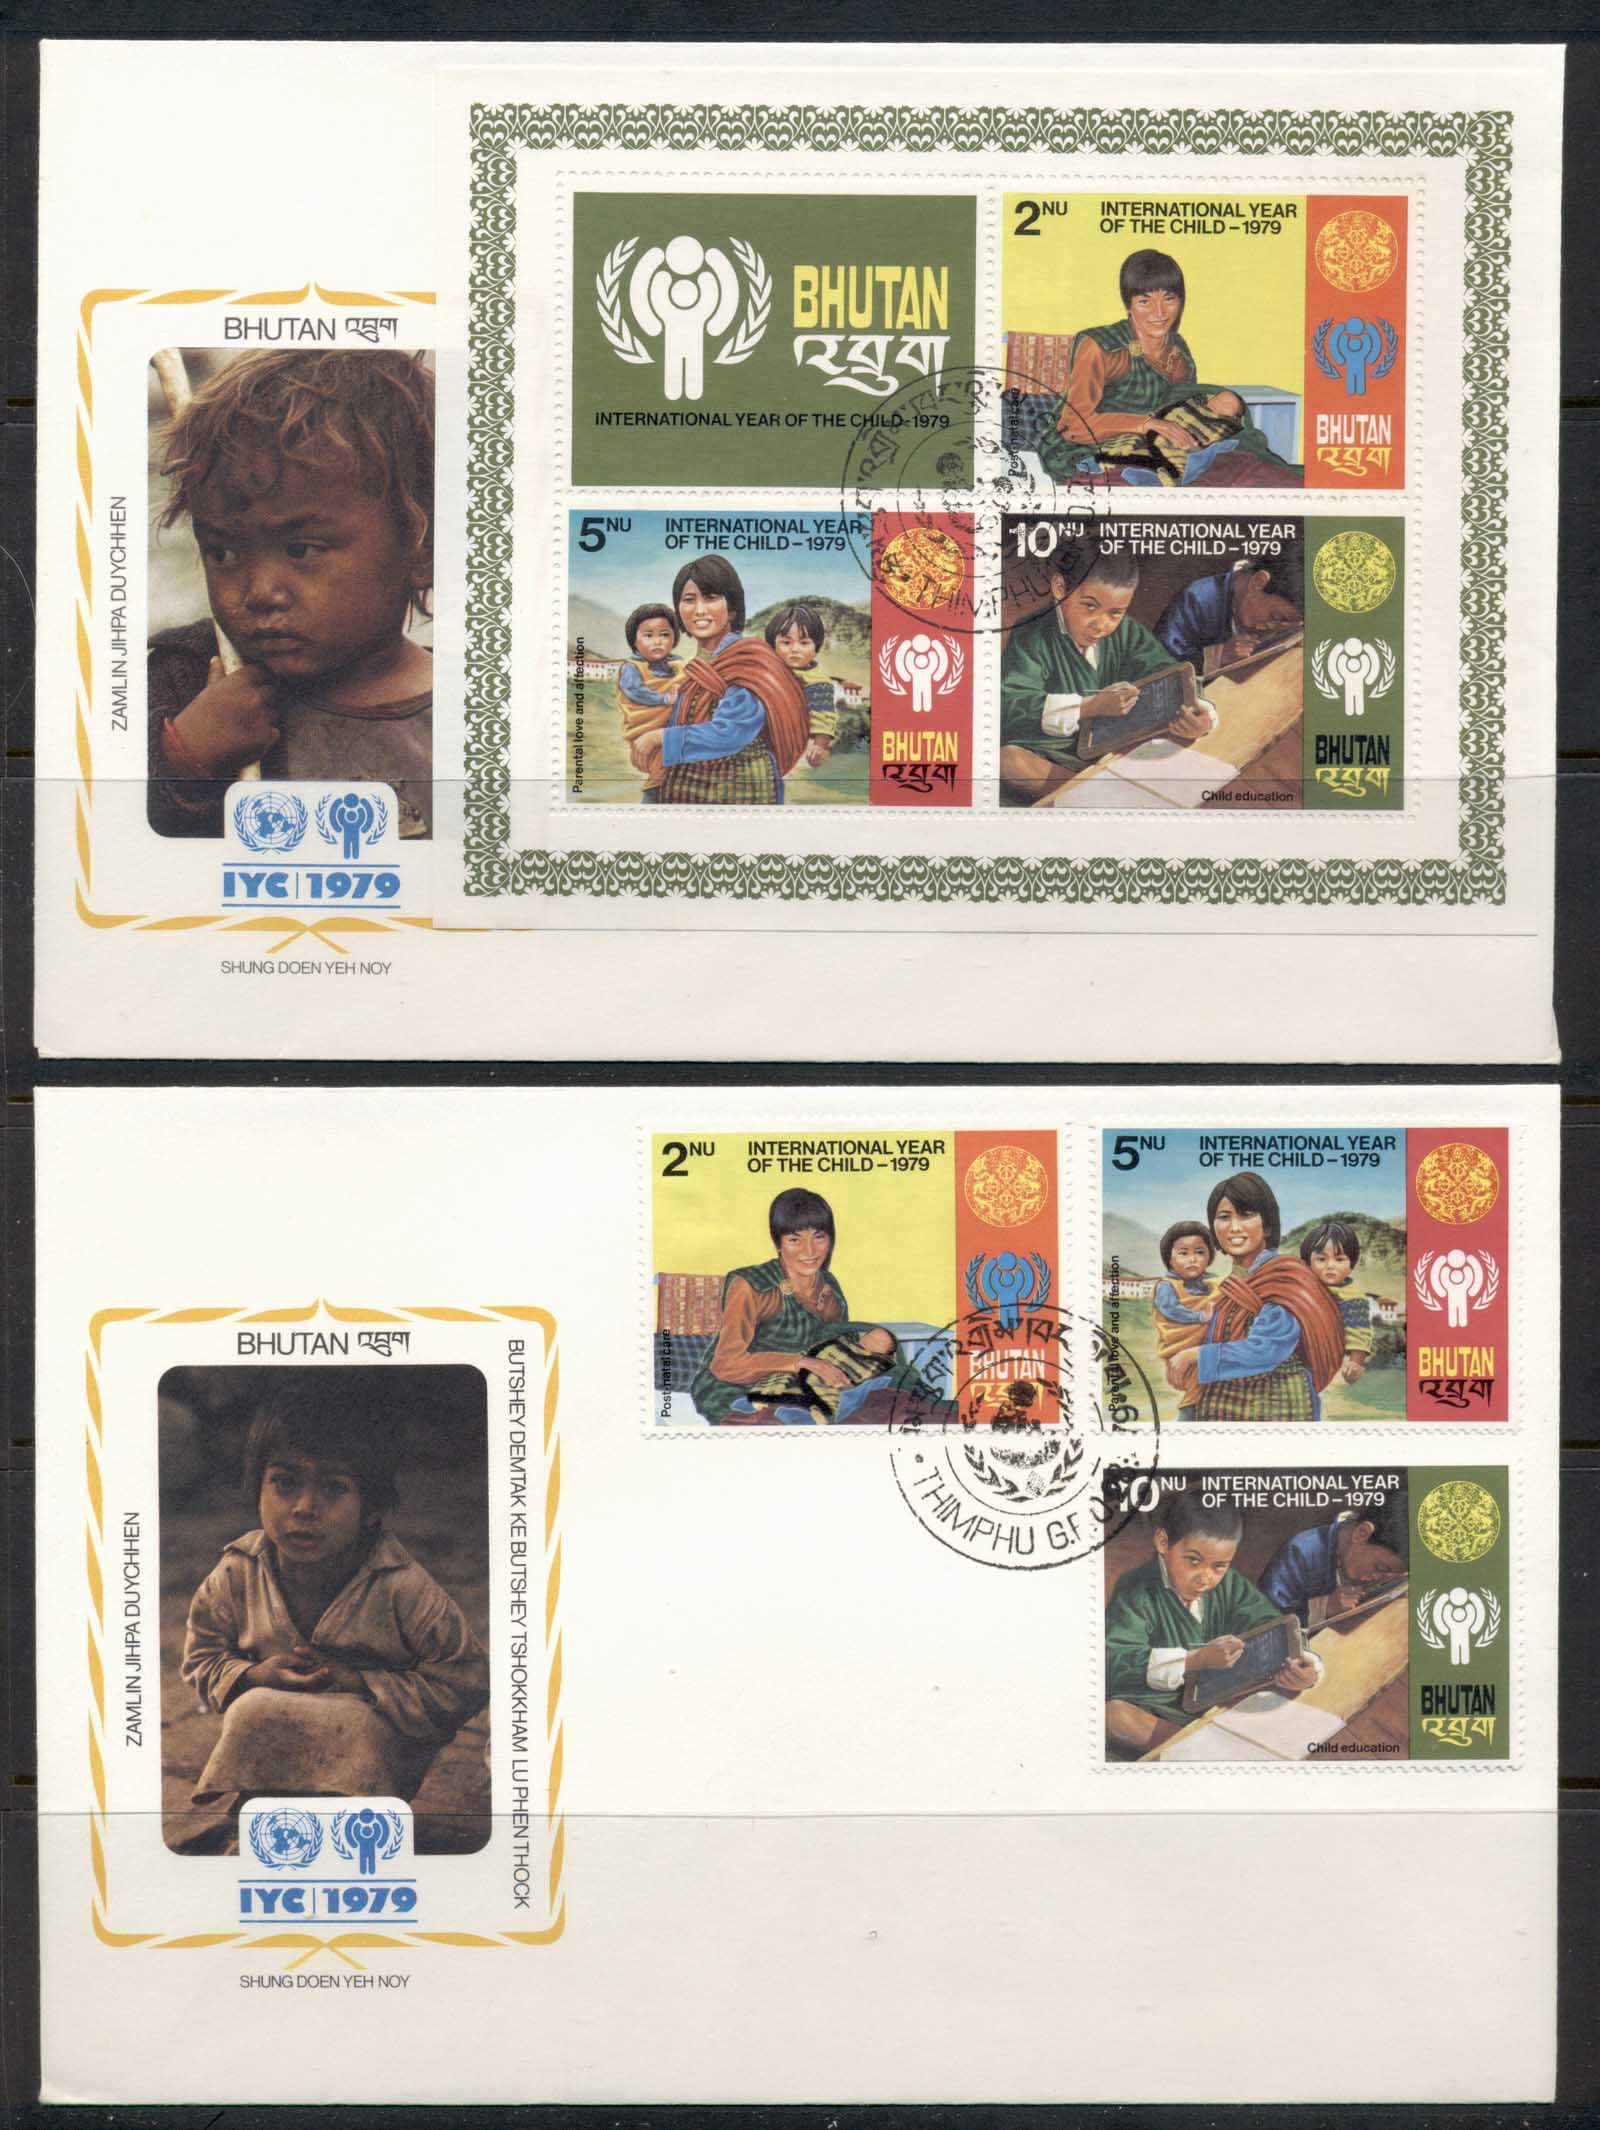 Bhutan 1979 IYC International year of the Child +MS 2x FDC